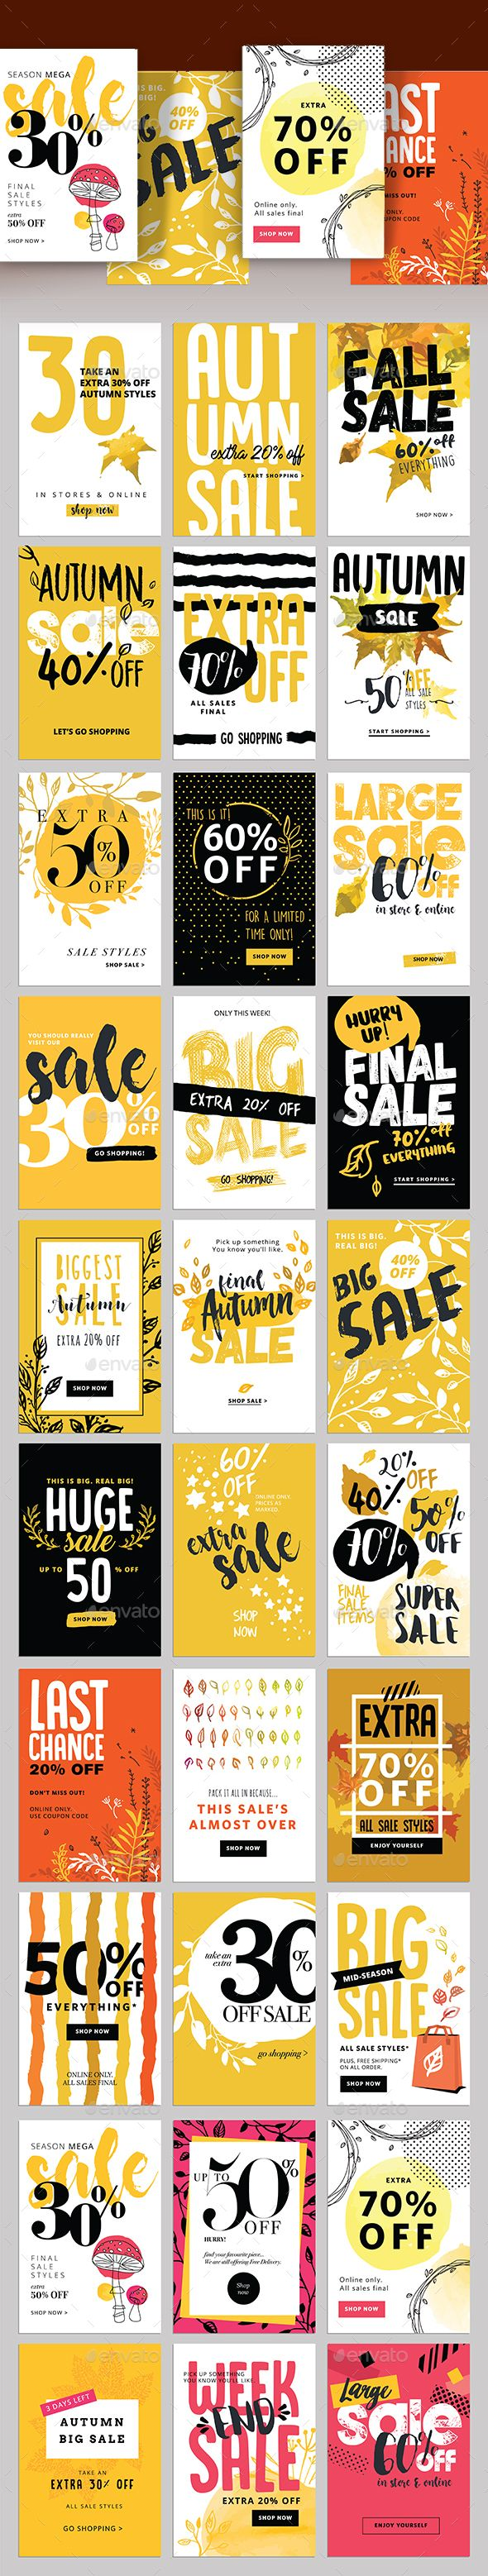 Autumn Social Media Sale Banners Template PSD, Vector EPS, AI Illustrator